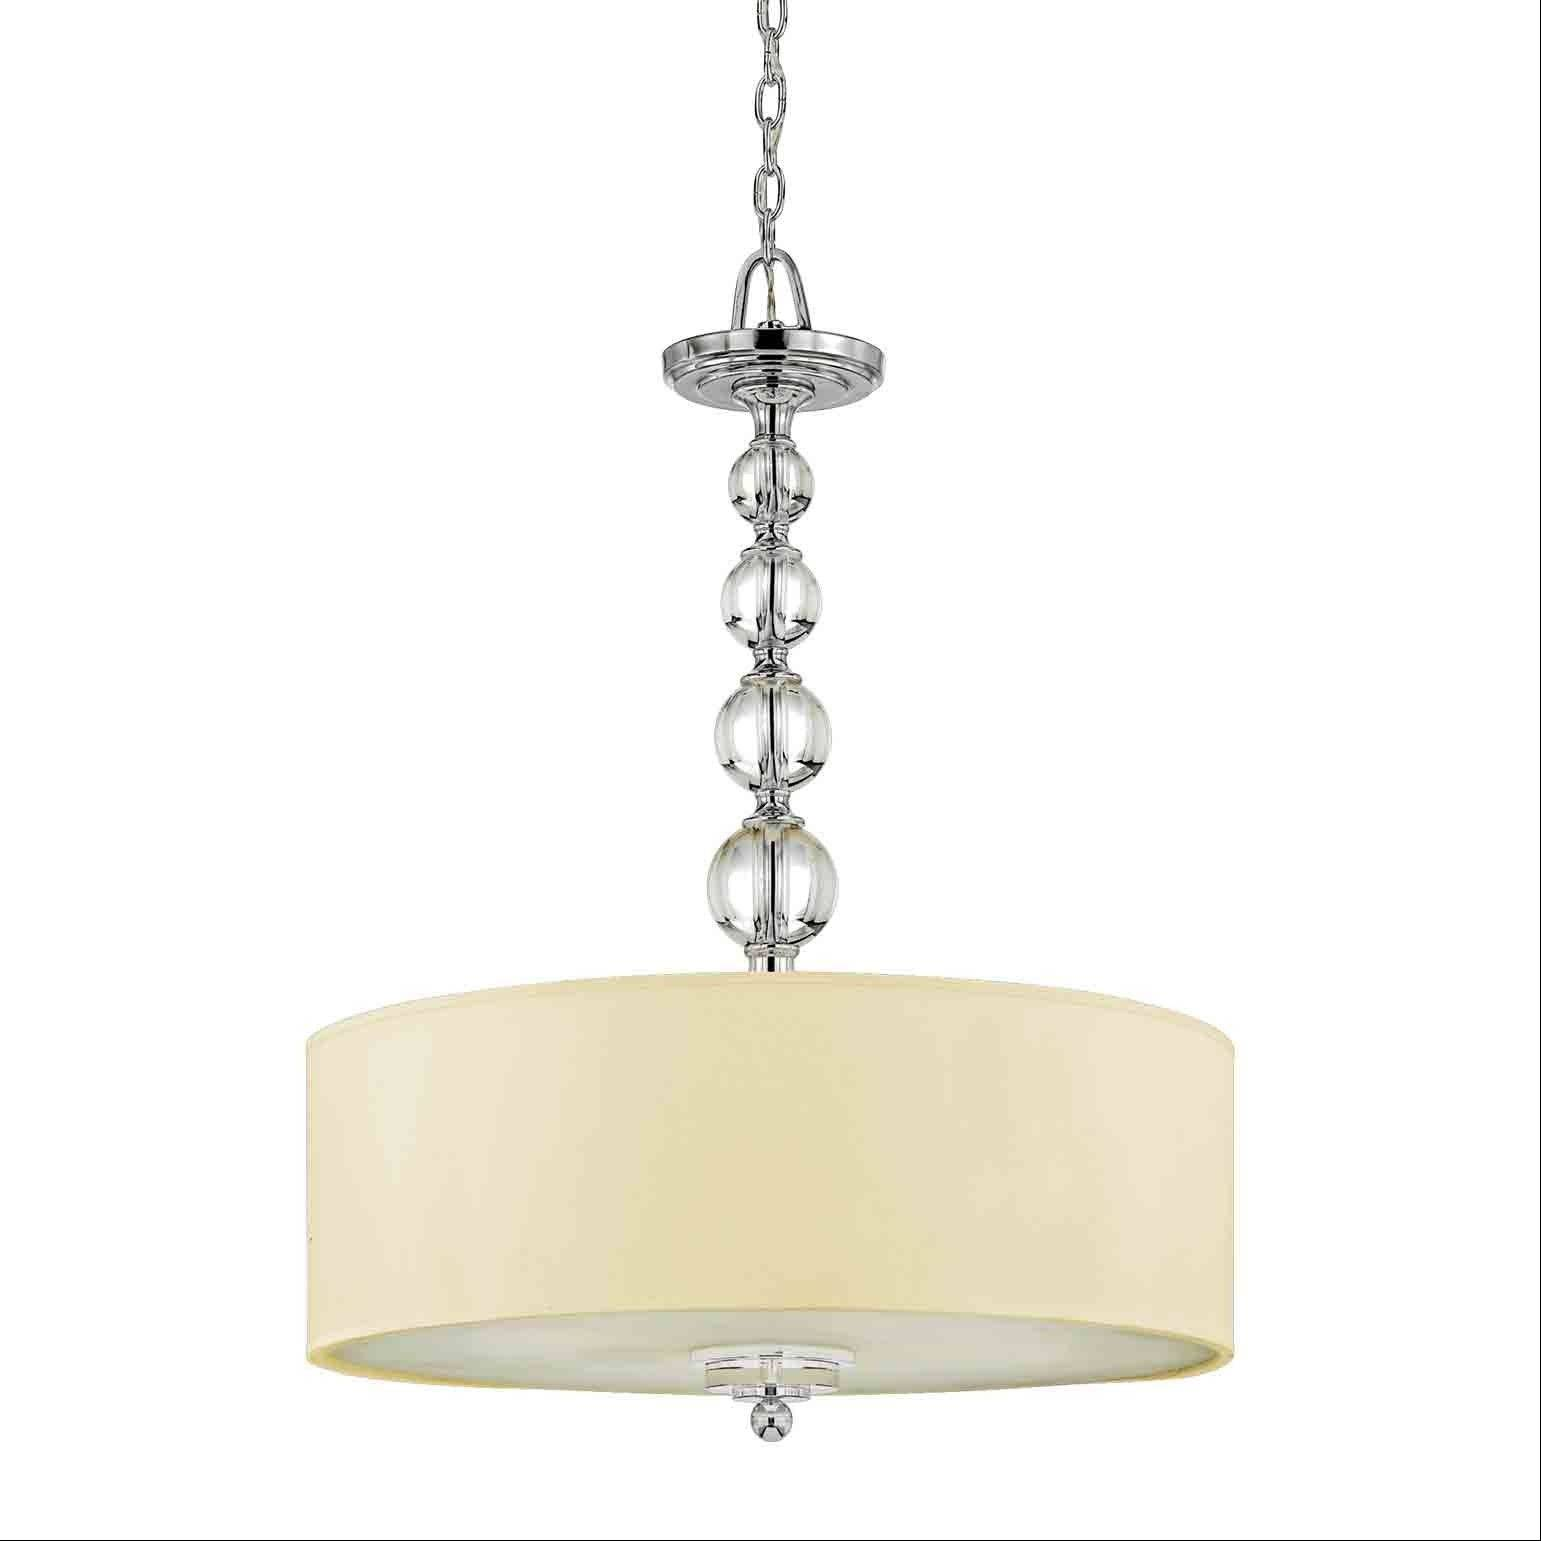 Semi-flush pendant for the living room area, Quoizel Lighting Downtown Collection model DW1824C.